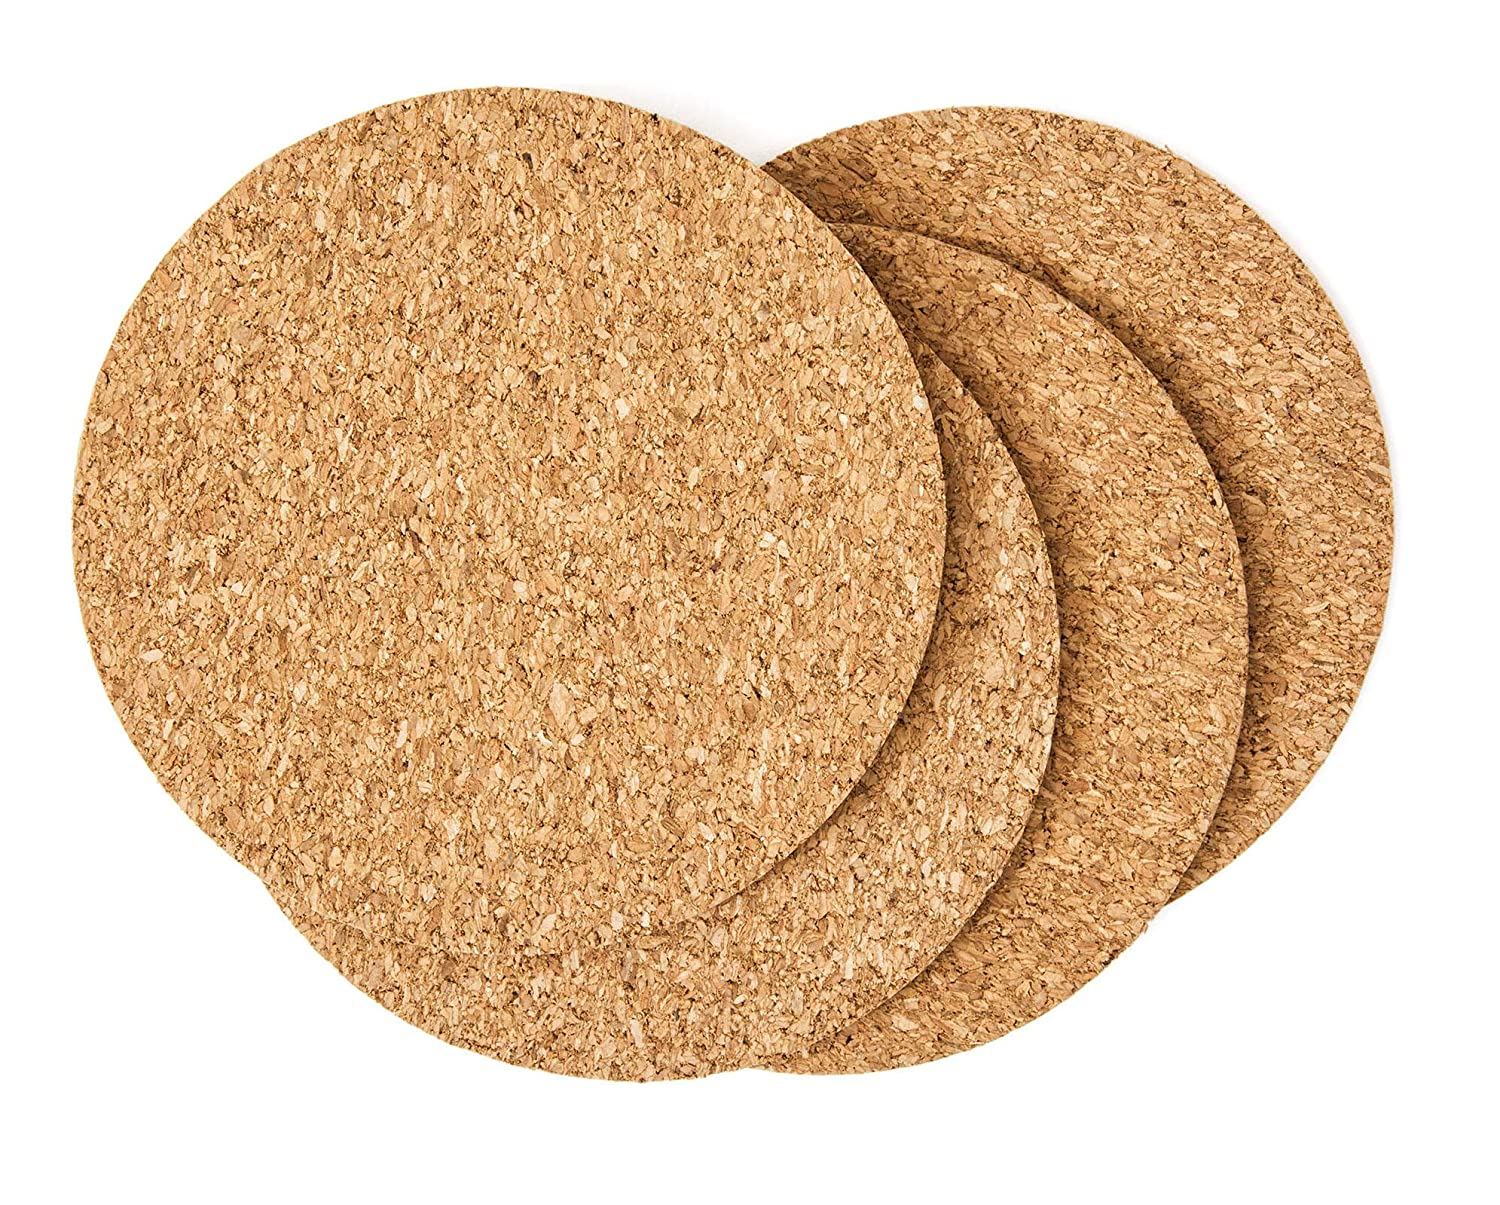 """Cork Drink Coasters 1/8"""" Thick 30 Pack - Home Bar and Kitchen Essential - Blank Reusable Absorbent Eco-friendly DIY Project Tile Craft Board - Restaurant Cafe Wedding Supplies and Accessories"""